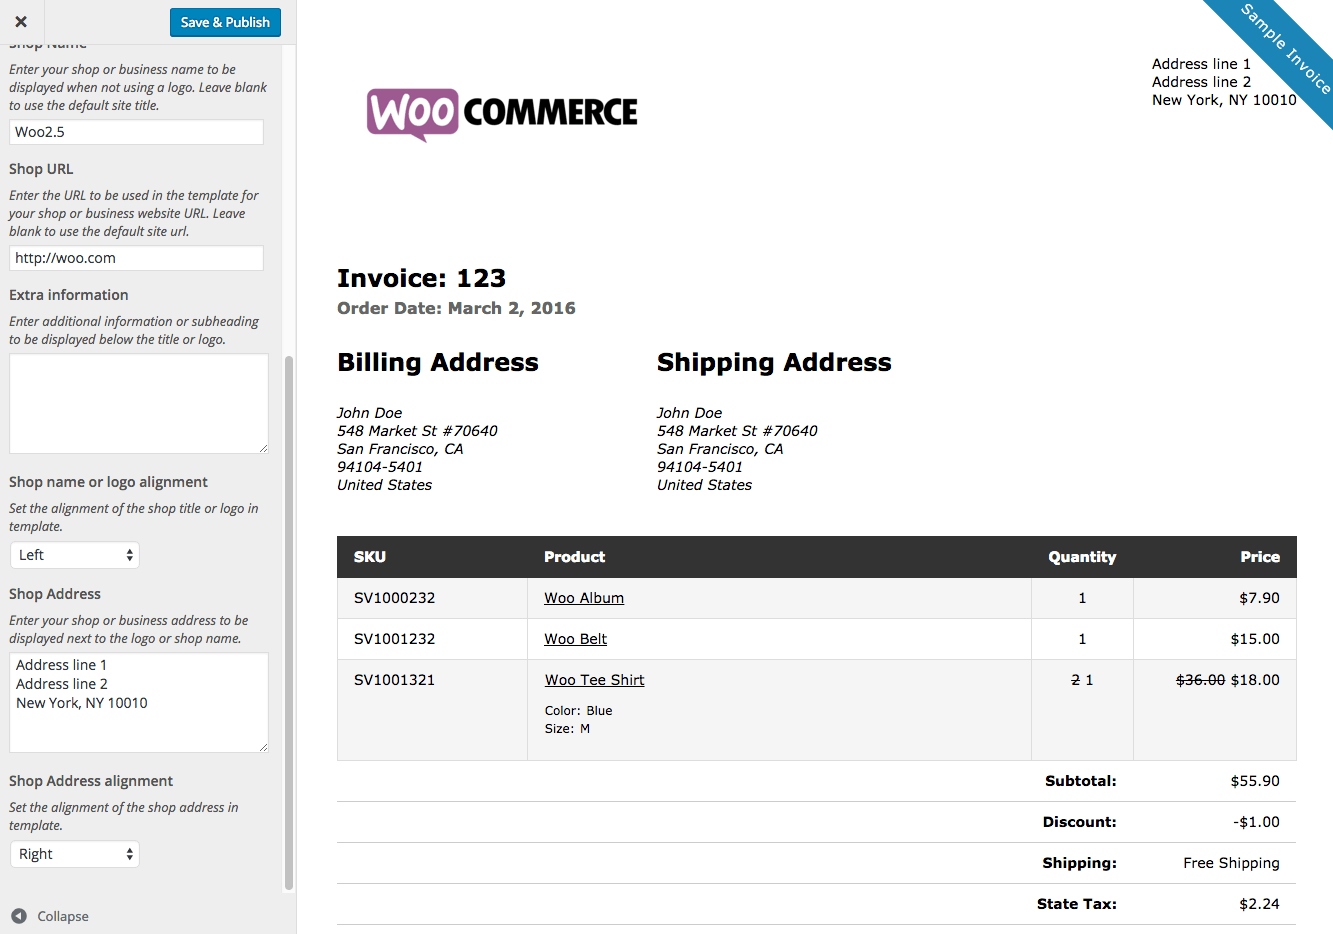 Totallocalus  Wonderful Woocommerce Print Invoices Amp Packing Lists  Woocommerce Docs With Entrancing Woocommerce Print Invoices  Packing Lists Customizer With Extraordinary Perforated Invoice Paper Also Define Sales Invoice In Addition Blank Invoice Microsoft Word And How To Write An Invoice Letter As Well As Invoice Freelance Additionally Create An Invoice In Microsoft Word From Docswoocommercecom With Totallocalus  Entrancing Woocommerce Print Invoices Amp Packing Lists  Woocommerce Docs With Extraordinary Woocommerce Print Invoices  Packing Lists Customizer And Wonderful Perforated Invoice Paper Also Define Sales Invoice In Addition Blank Invoice Microsoft Word From Docswoocommercecom